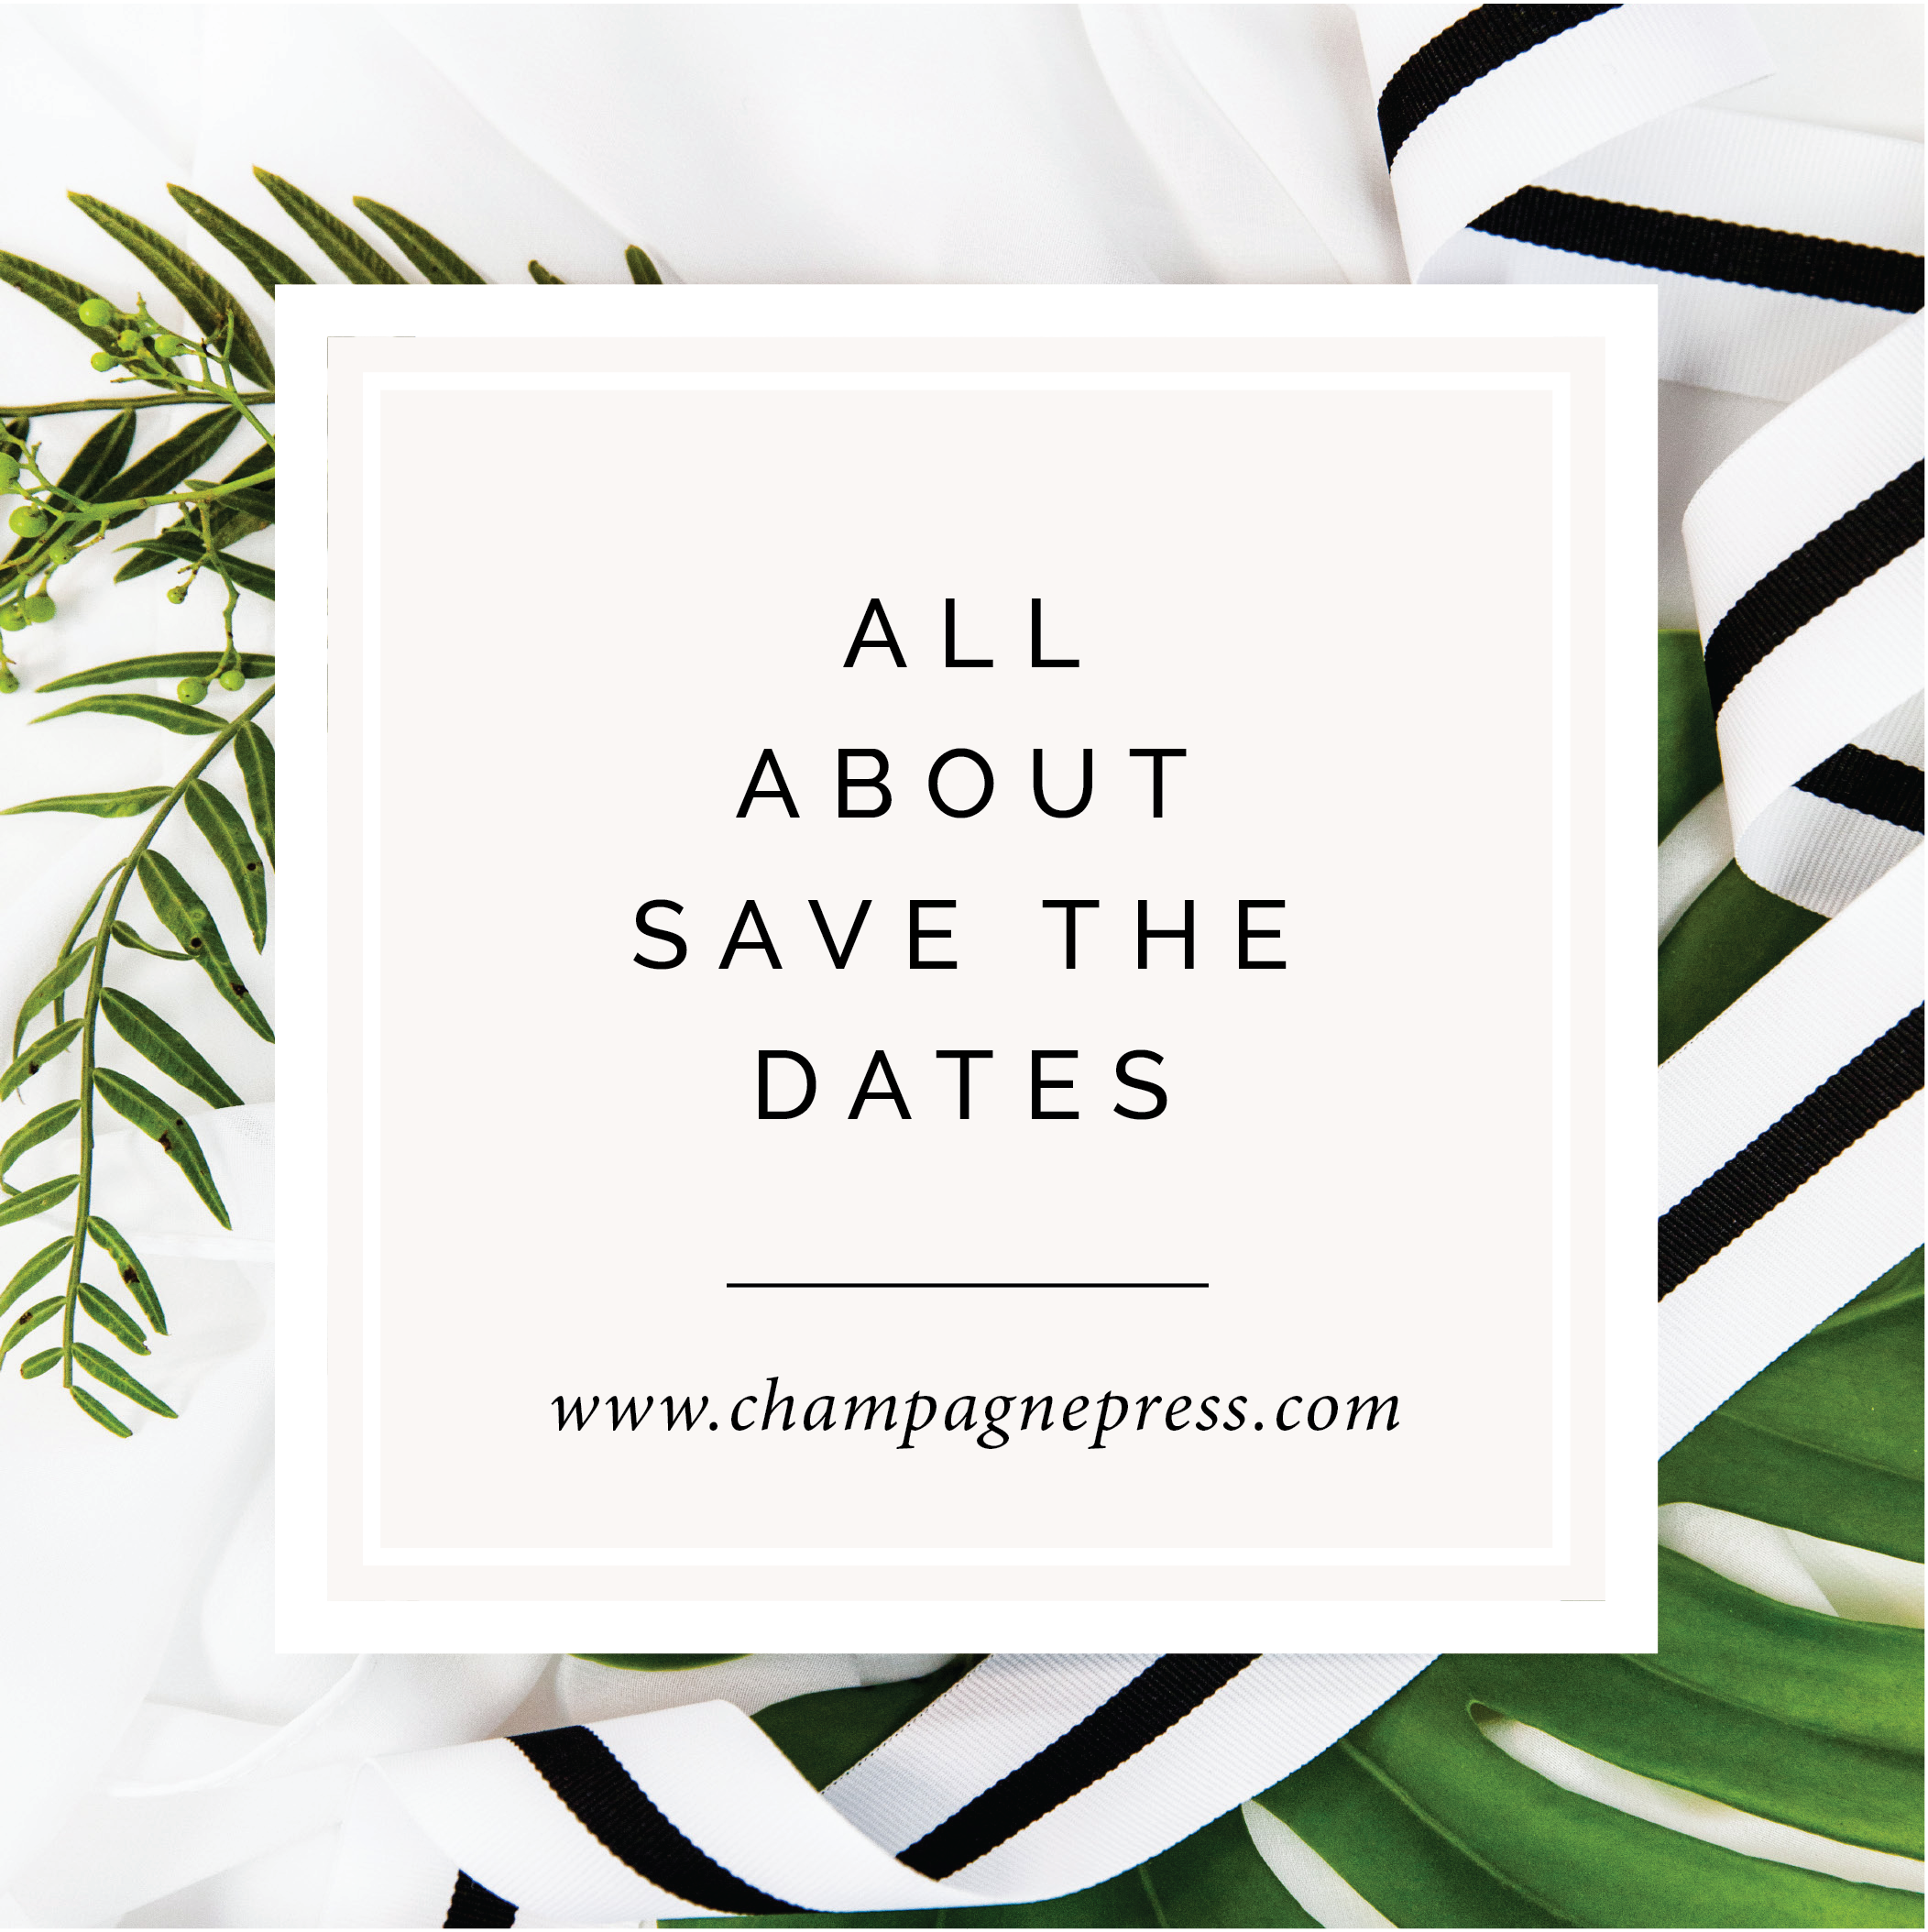 All About Save the Dates